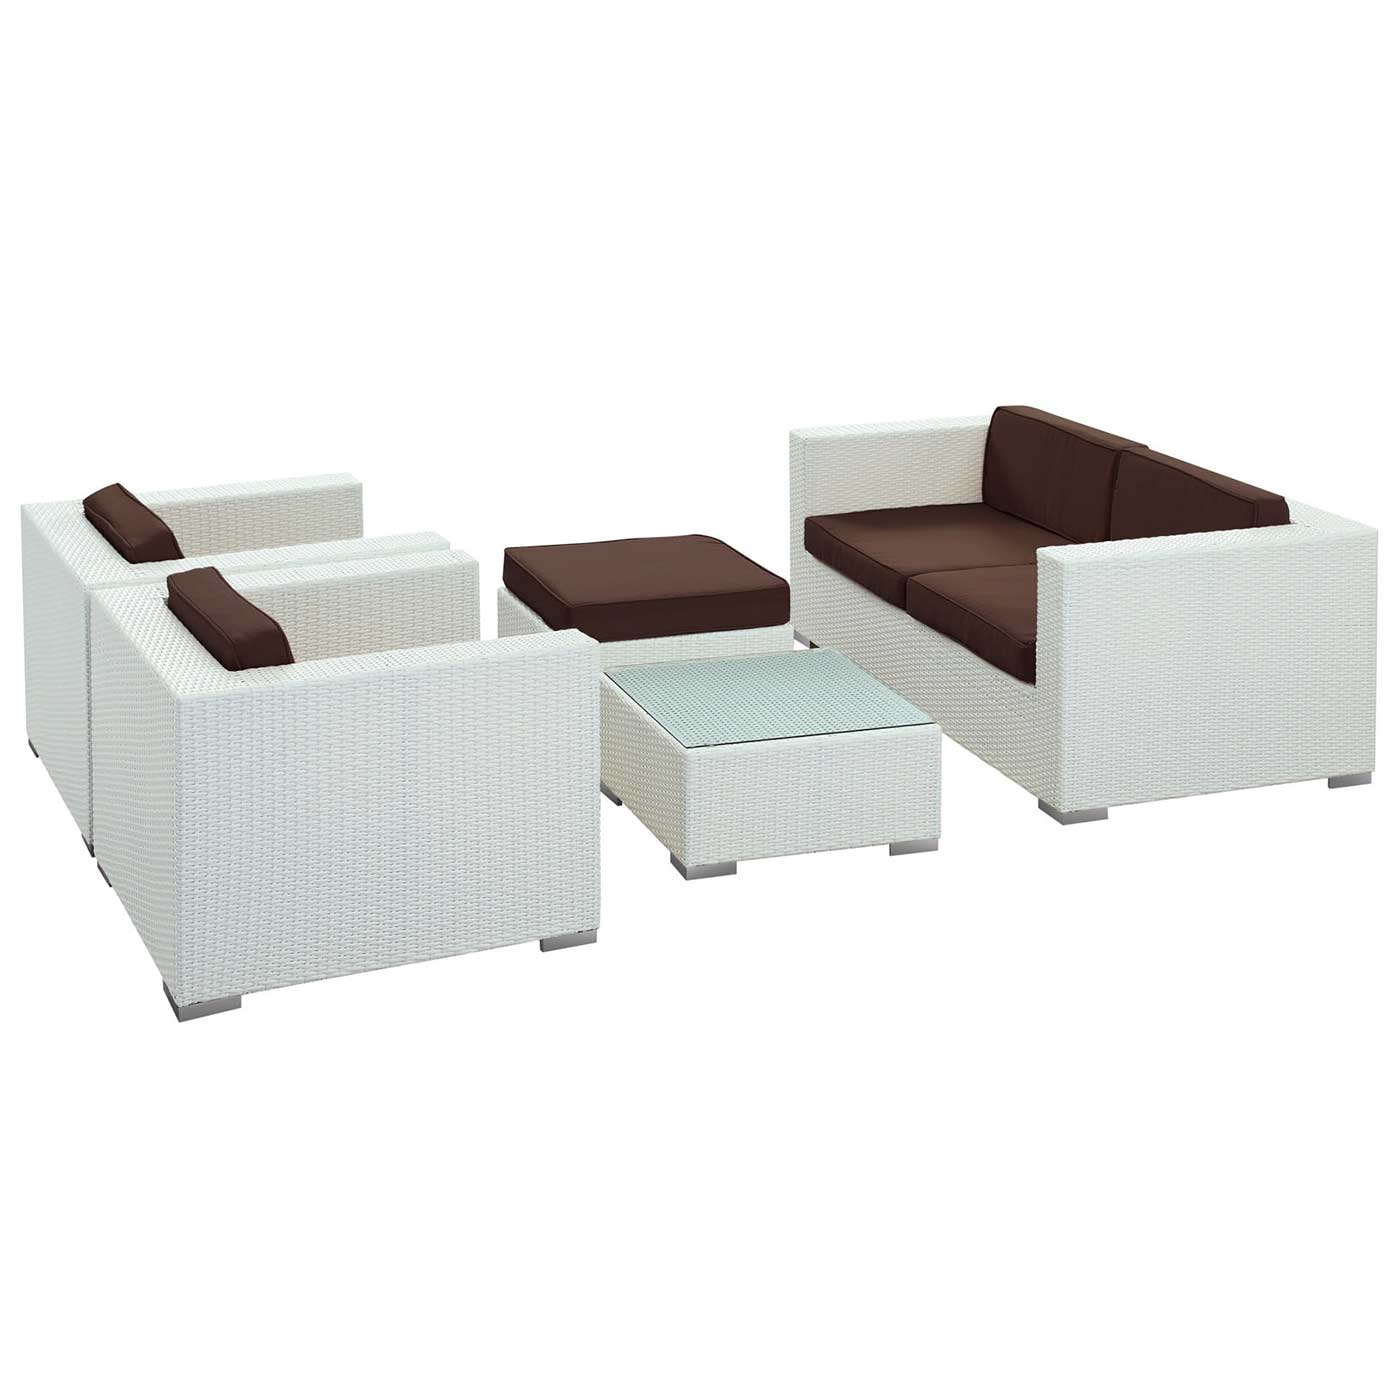 Modway Malibu 5 Piece Outdoor Patio Sofa Set FREE SHIPPING